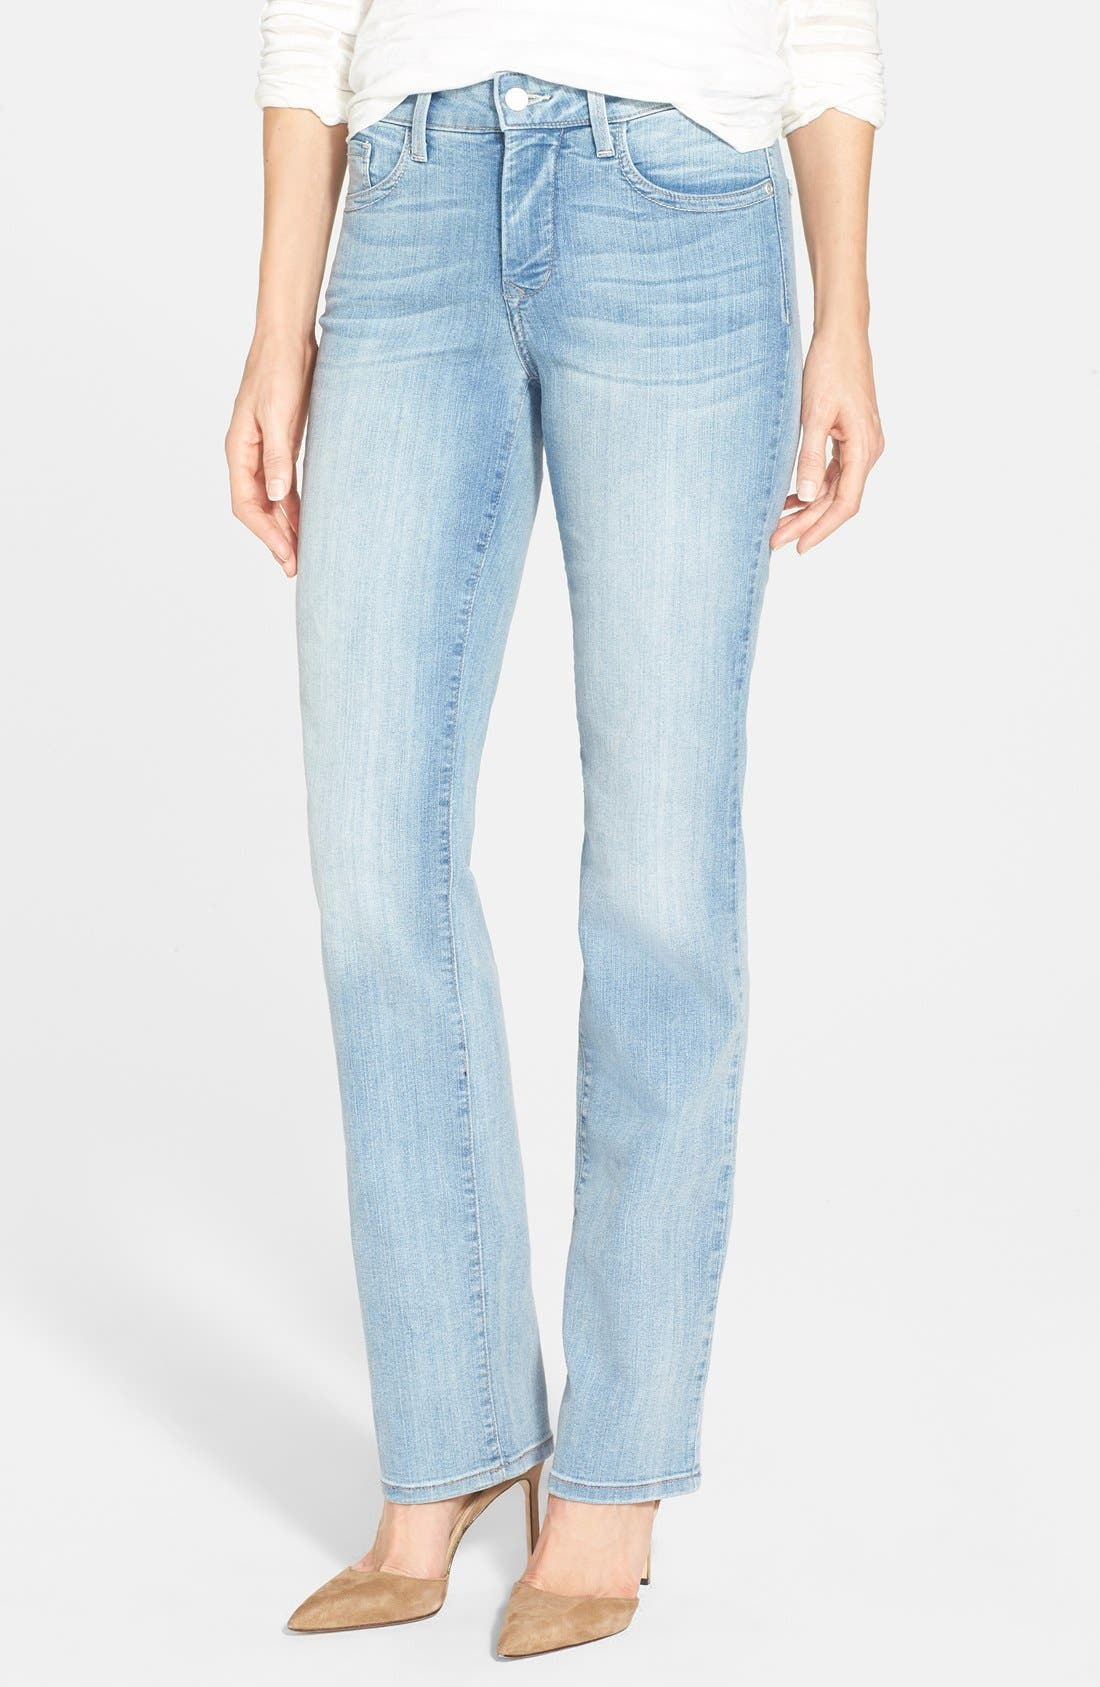 Main Image - NYDJ 'Marilyn' Stretch Straight Leg Jeans (Manhattan Beach)